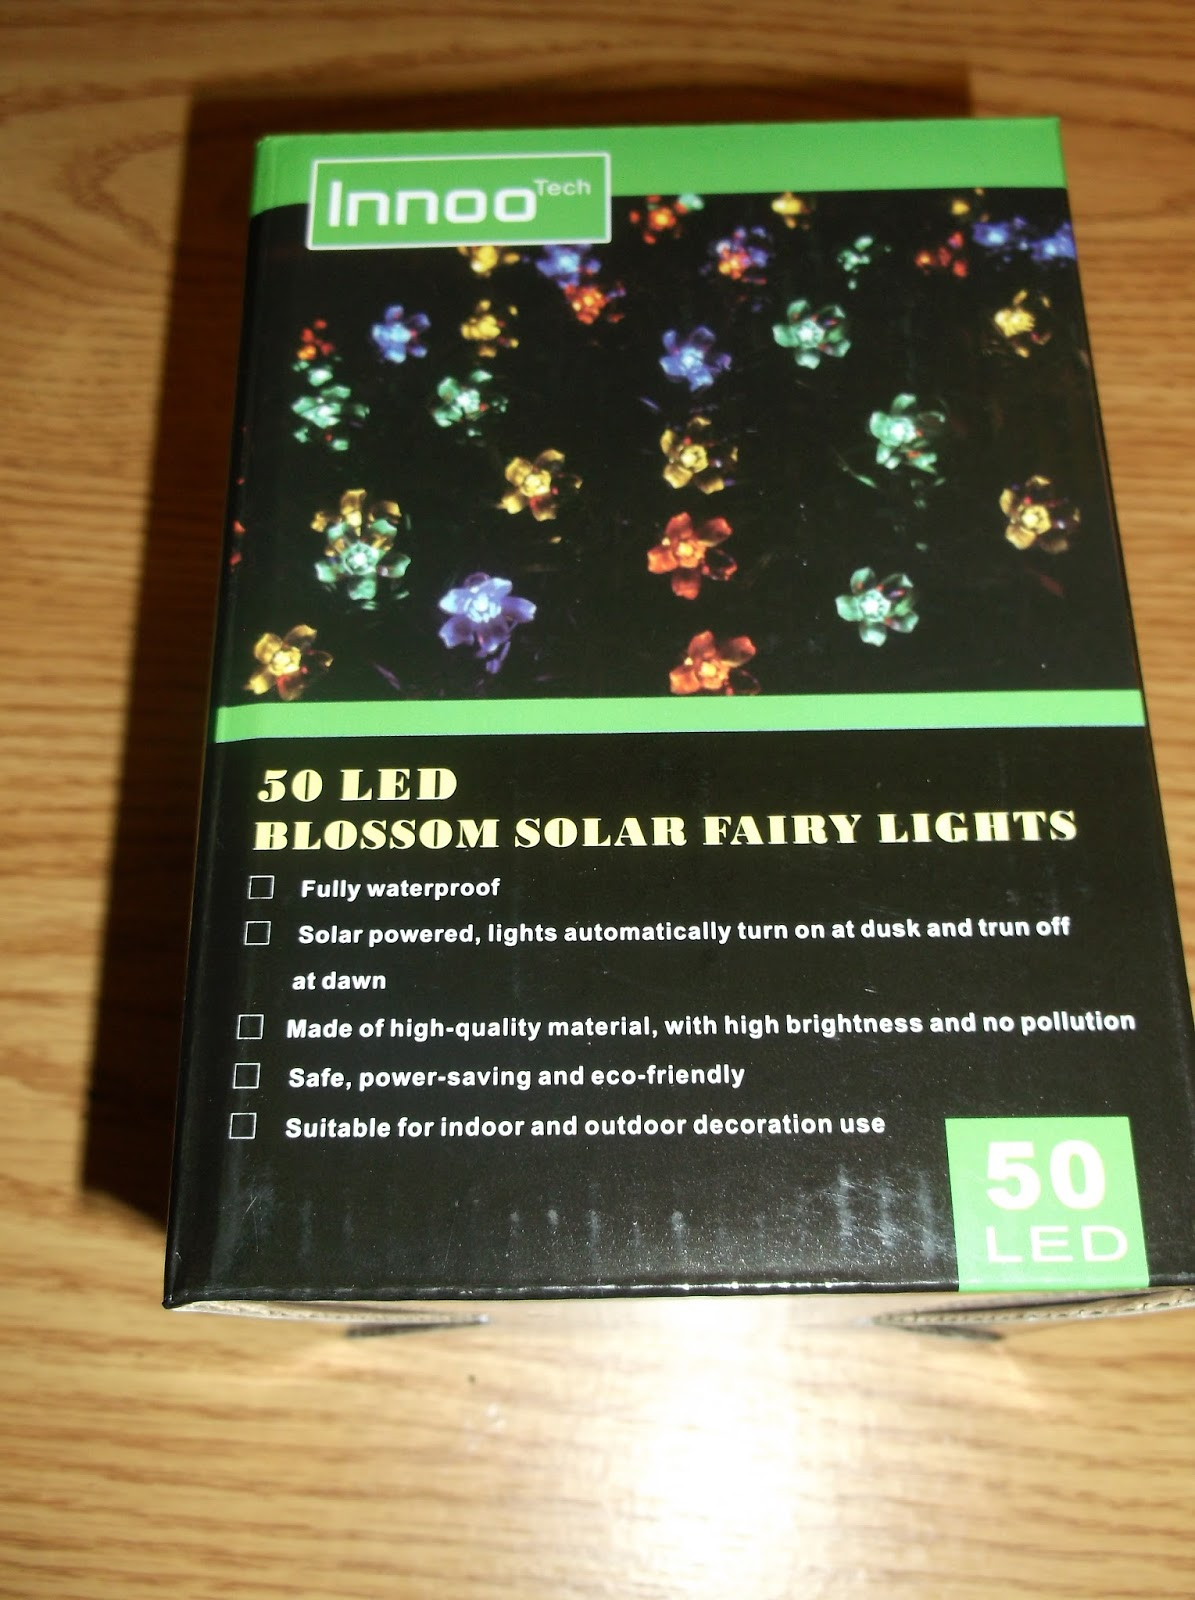 Missys Product Reviews : Purple Solar Outdoor String Light from InnoTech